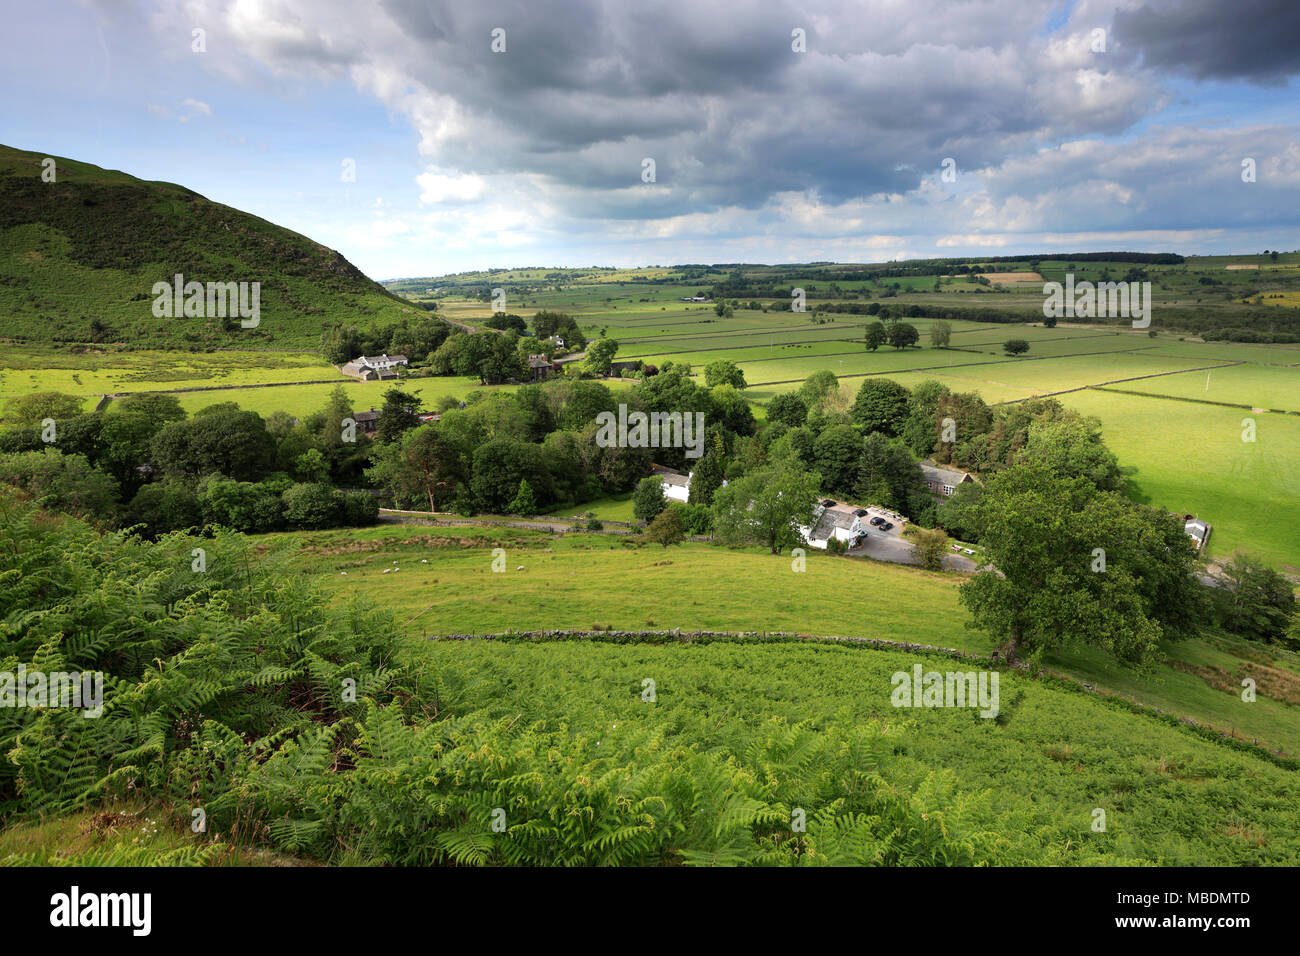 View over Mungrisdale village from Souther fell, Lake District National Park, Cumbria County, England, UK - Stock Image